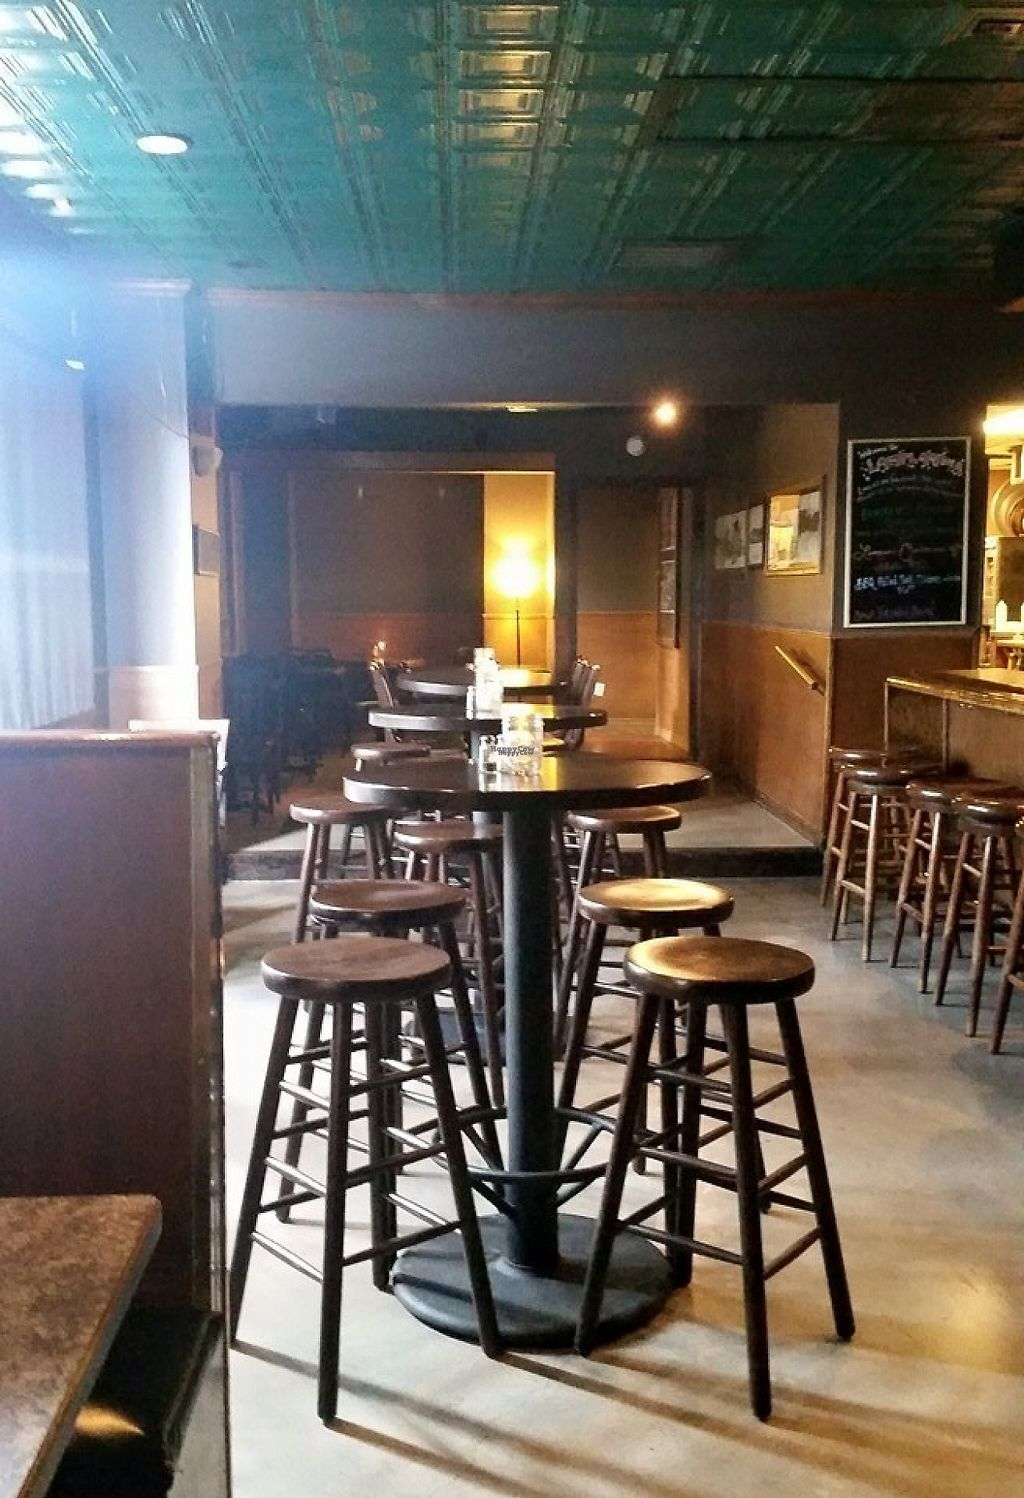 "Photo of The Lamp  by <a href=""/members/profile/community"">community</a> <br/>Inside The Lamp Tavern <br/> January 3, 2017  - <a href='/contact/abuse/image/84543/207395'>Report</a>"